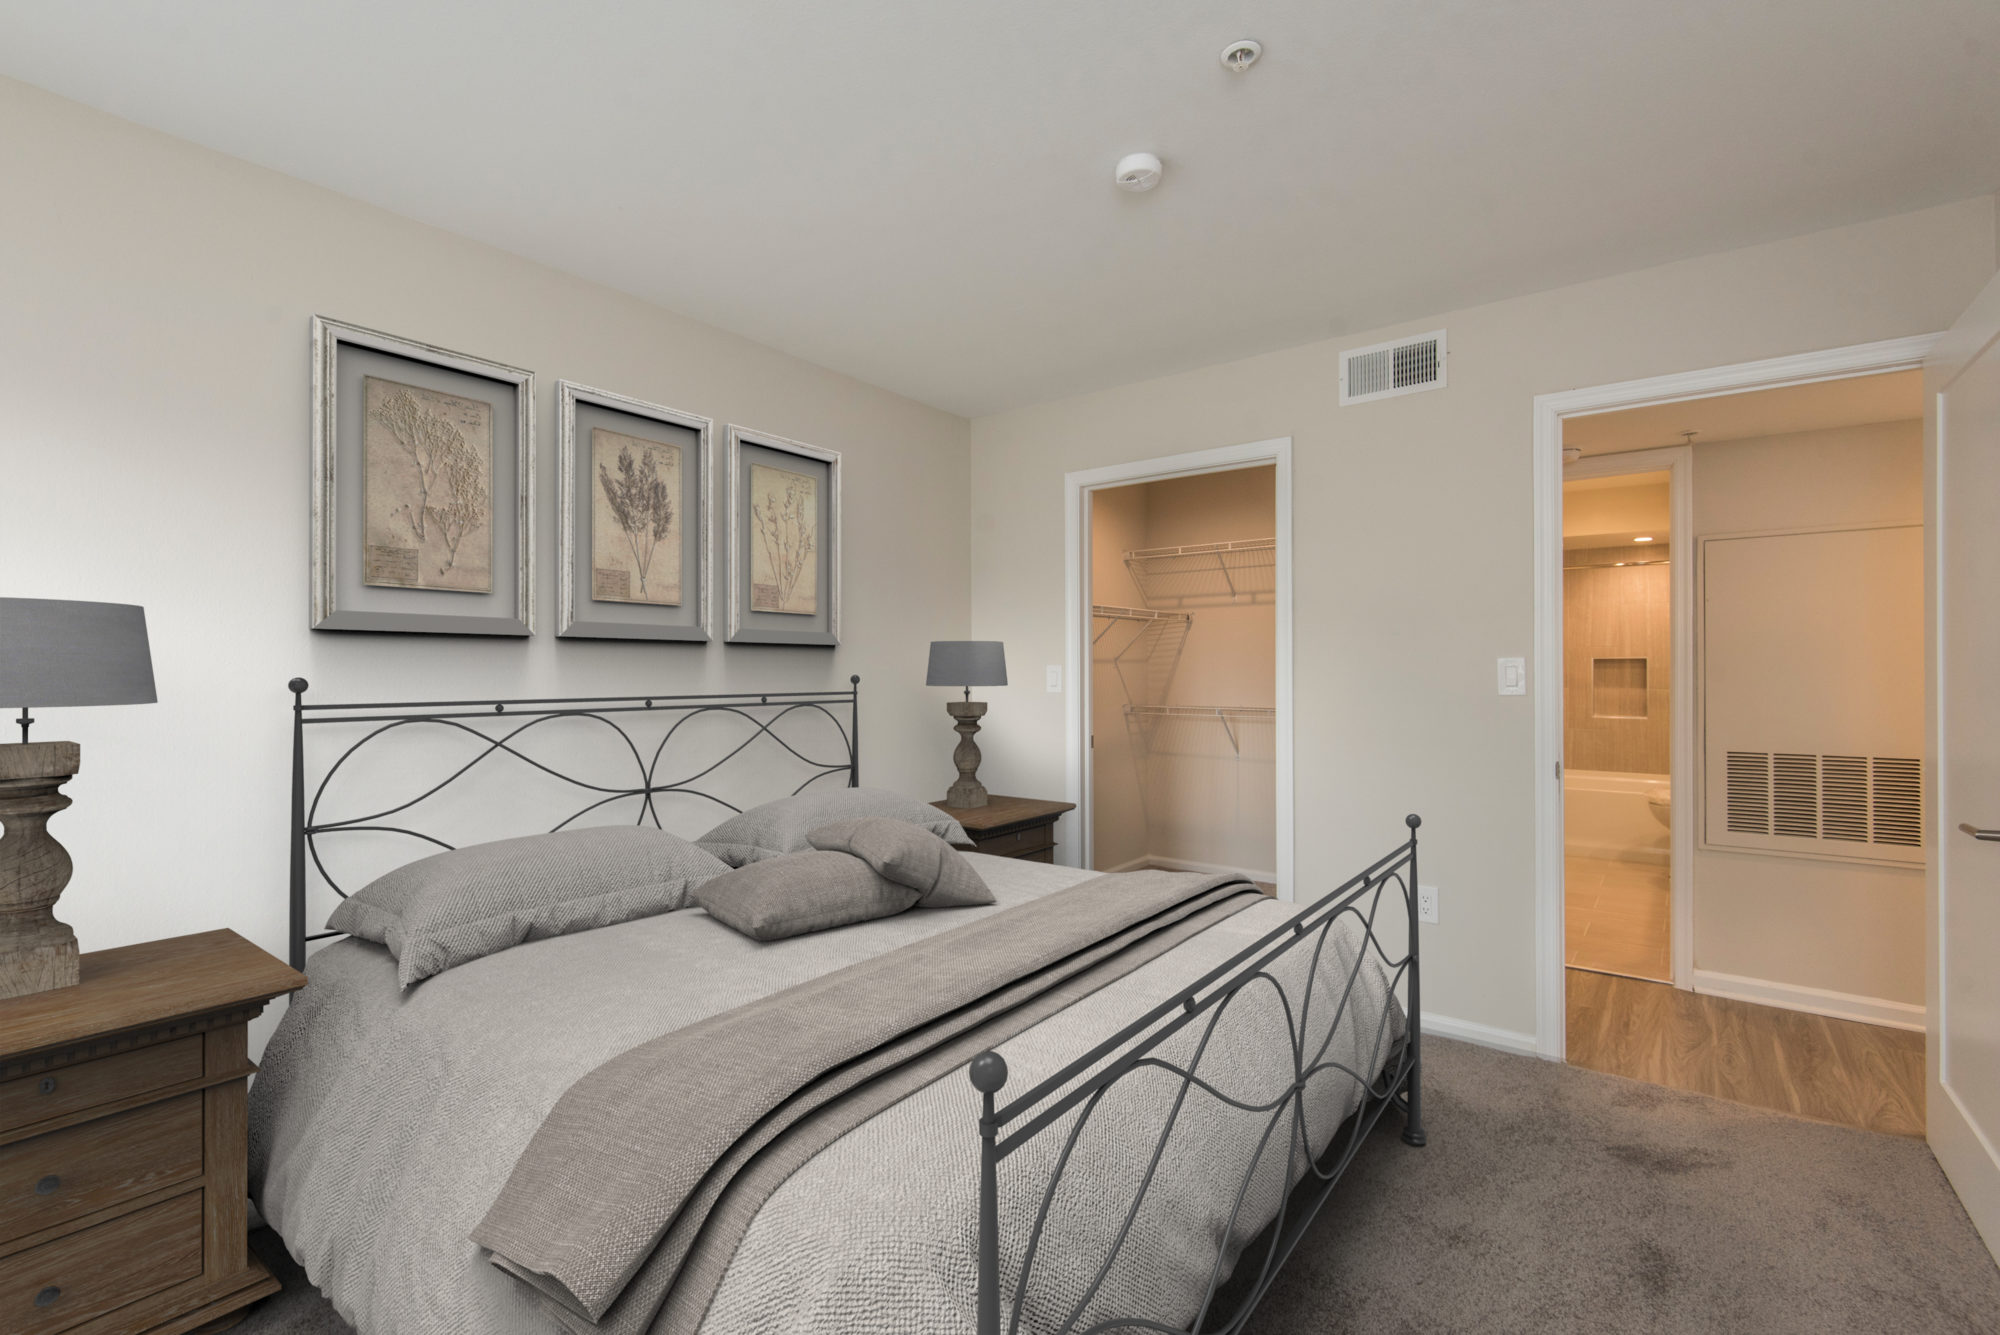 large bedroom and closet space in an apartment